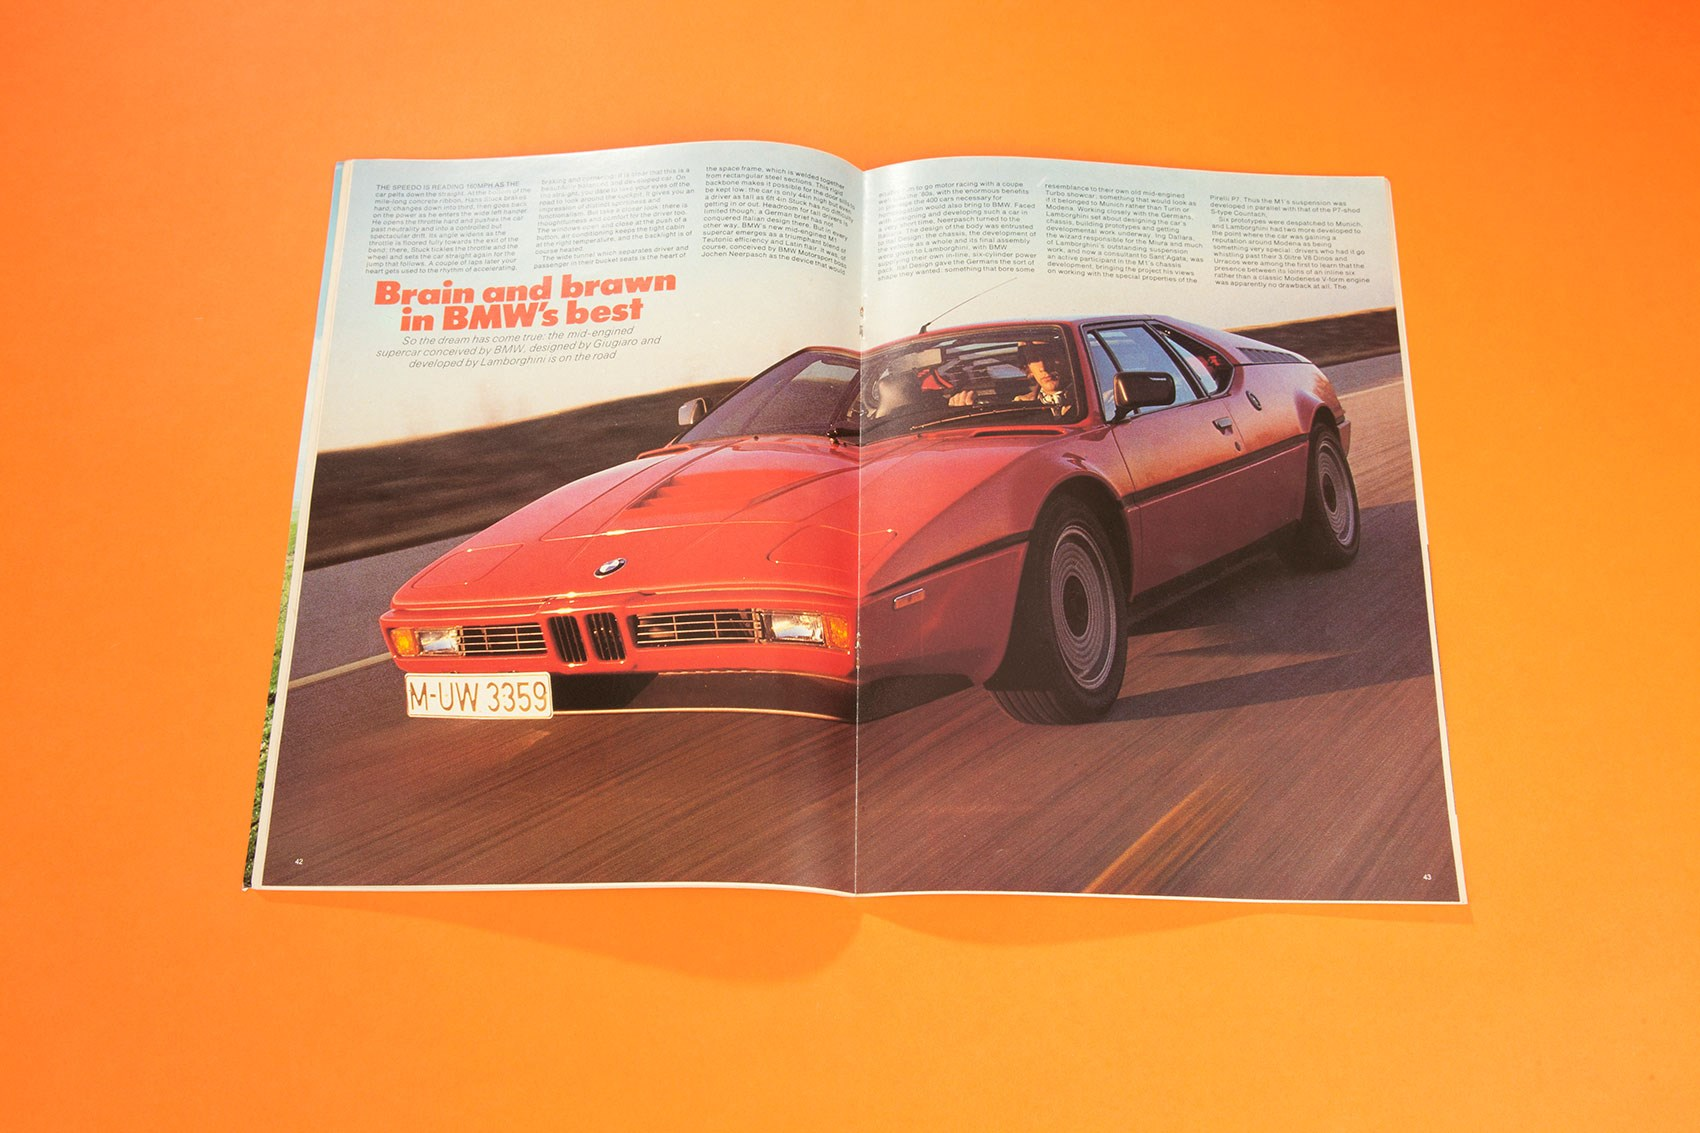 The dream has come true\' - our first experience of the BMW M1 ...